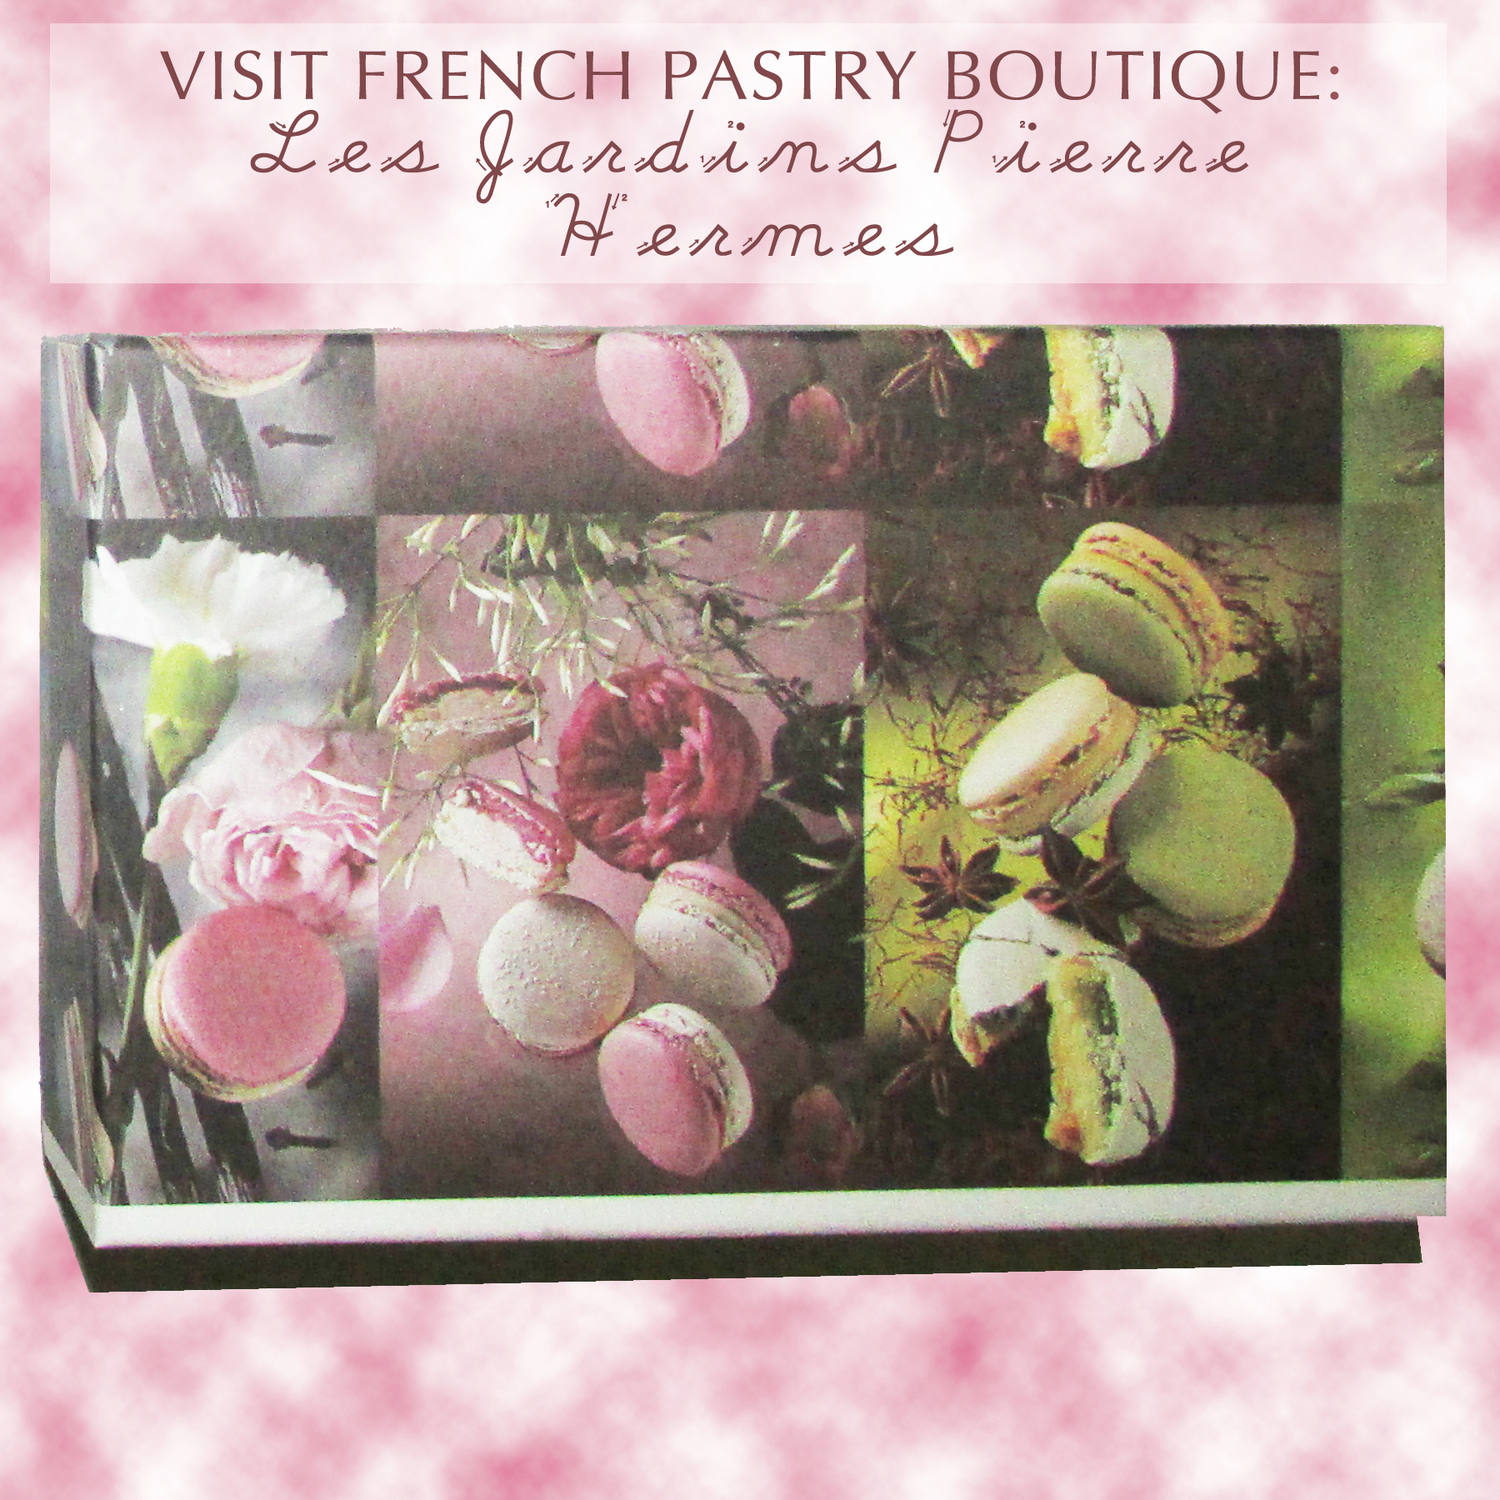 This summer collection is inspired by French pastries, namely the absolutely delicious macaron!  I got this box of macarons a few years ago from my sister, who studied in Europe and spent a bit of time in Paris.  The collection of macarons was called Les Jardins.  If you look at the website, the packaging is now different - more modern - but I love the old world feel of the box that my sister gave me because it looks more authentic and timeless.   Pierre Hermes is the maker of these macarons. Really, this is more like the designer, given the immaculate flavor of these delicious bite sized desserts.  Pierre Hermes blends together unique combinations in the name of an artisanal luxurious eating experience.  Some of the flavors include Mushroom and Lemon, Vanilla and Basil, Chocolate and Lime, Rose and Ginger, Lime Raspberry Espelette Pepper, and Rose Vanilla and Cloves.    Although it was a few years ago, I can remember vividly that my favorite flavor was the Lime Raspberry and Esseltete Pepper macaron.  The Raspberry made for a very fruity flavor and the lime gave the macaron a fresh and bright flavor that gave the macaron a spring zesty note.  Then the pepper was the superstar of this dessert.  Surprisingly, the pepper did not make the macaron spicy.  Instead, it gave the macaron warmth and had the effect of adding salt to a sweet food - it opened up the raspberry flavor and gave the macaron a more floral flavor.  It was outstanding and the flavor is complex, yet simple enough so that it is hard to describe.    Pierre Hermes also has poundcake, waffles and many other desserts - most of which can be shipped, although products like ice-cream you can order online and pick up.  They are located in France, on rue de Bonaparte street to be exact.  If you're ever in the area, if you want to order from them (for a pretty penny), or if you're a master baker and need some new ideas of innovative desserts to make, I would definitely visit their site.  For more on Pierre Hermes, visit:   http://www.pierreherme.com  .